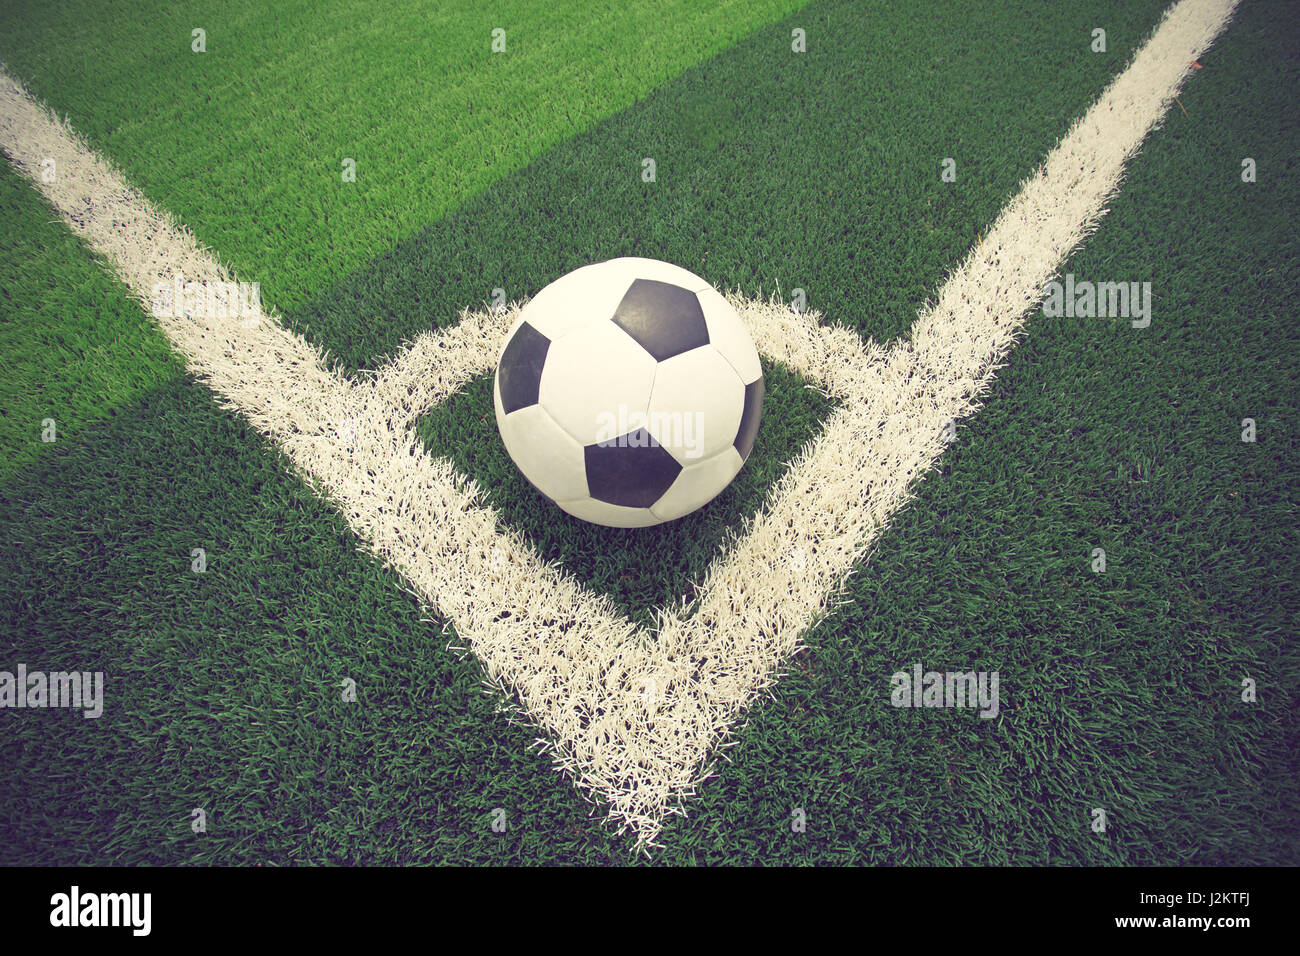 Soccer Ball Or Football On Field Vintage Color